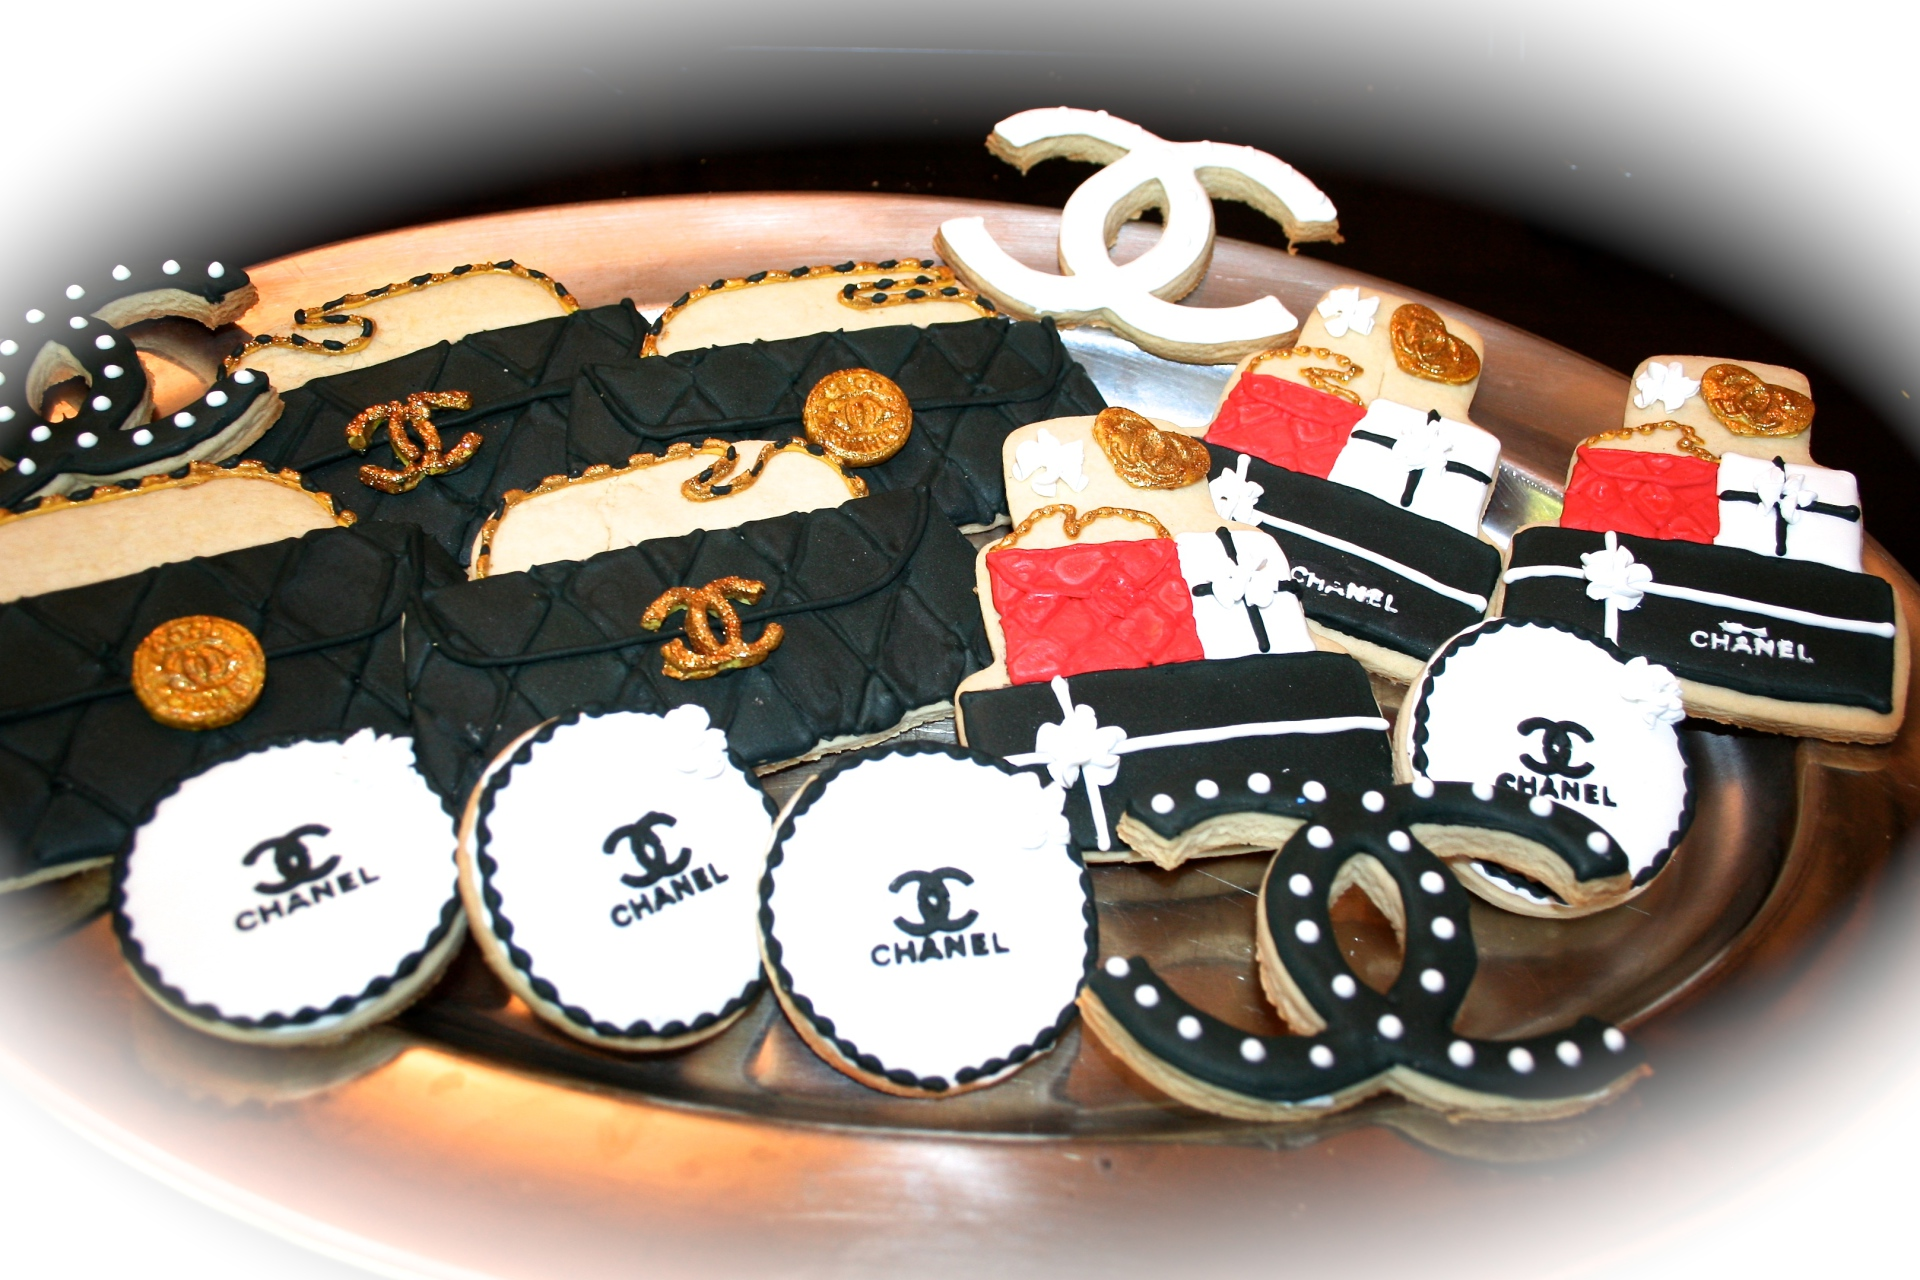 Chanel theme cookies